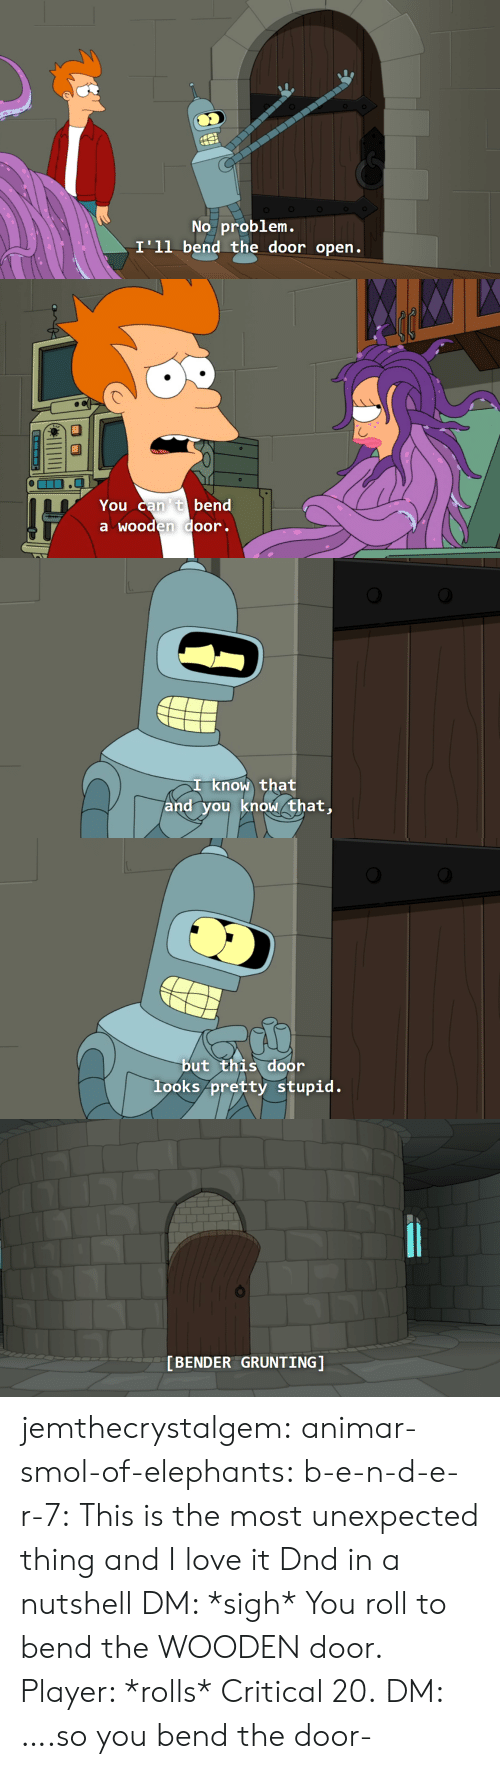 Love, Tumblr, and Blog: No problem.  I'll bend the door open.   You can 't bend  a wooden door.   I know that  and you know that,   but this door  looks pretty stupid.   [BENDER GRUNTING] jemthecrystalgem:  animar-smol-of-elephants:  b-e-n-d-e-r-7: This is the most unexpected thing and I love it Dnd in a nutshell   DM: *sigh* You roll to bend the WOODEN door. Player: *rolls* Critical 20. DM: ….so you bend the door-